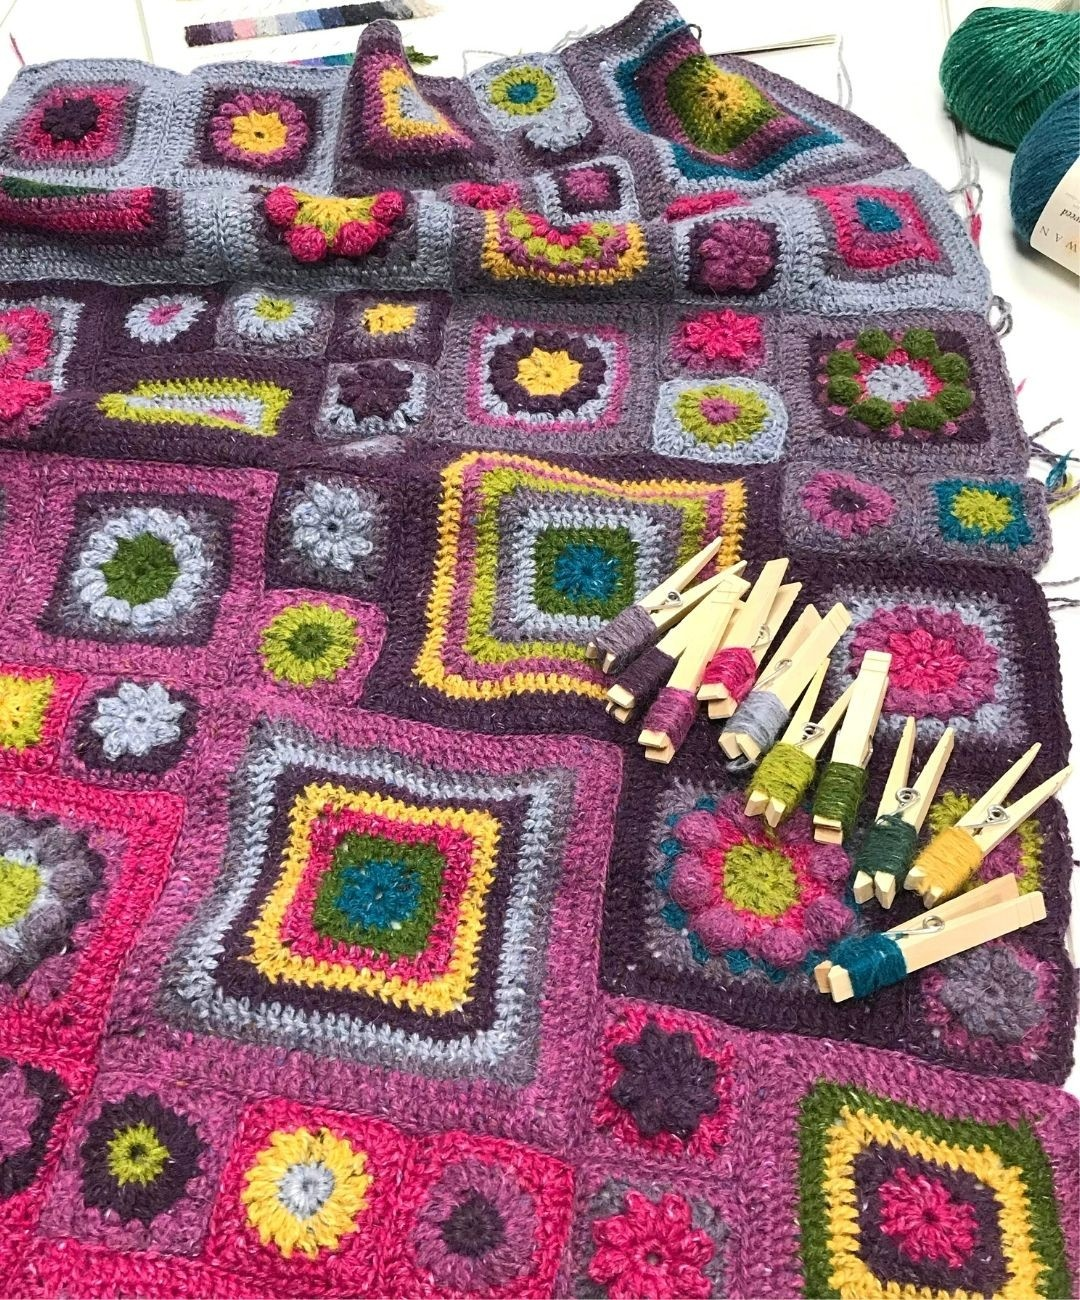 Granny Square crochet blanket and yarns